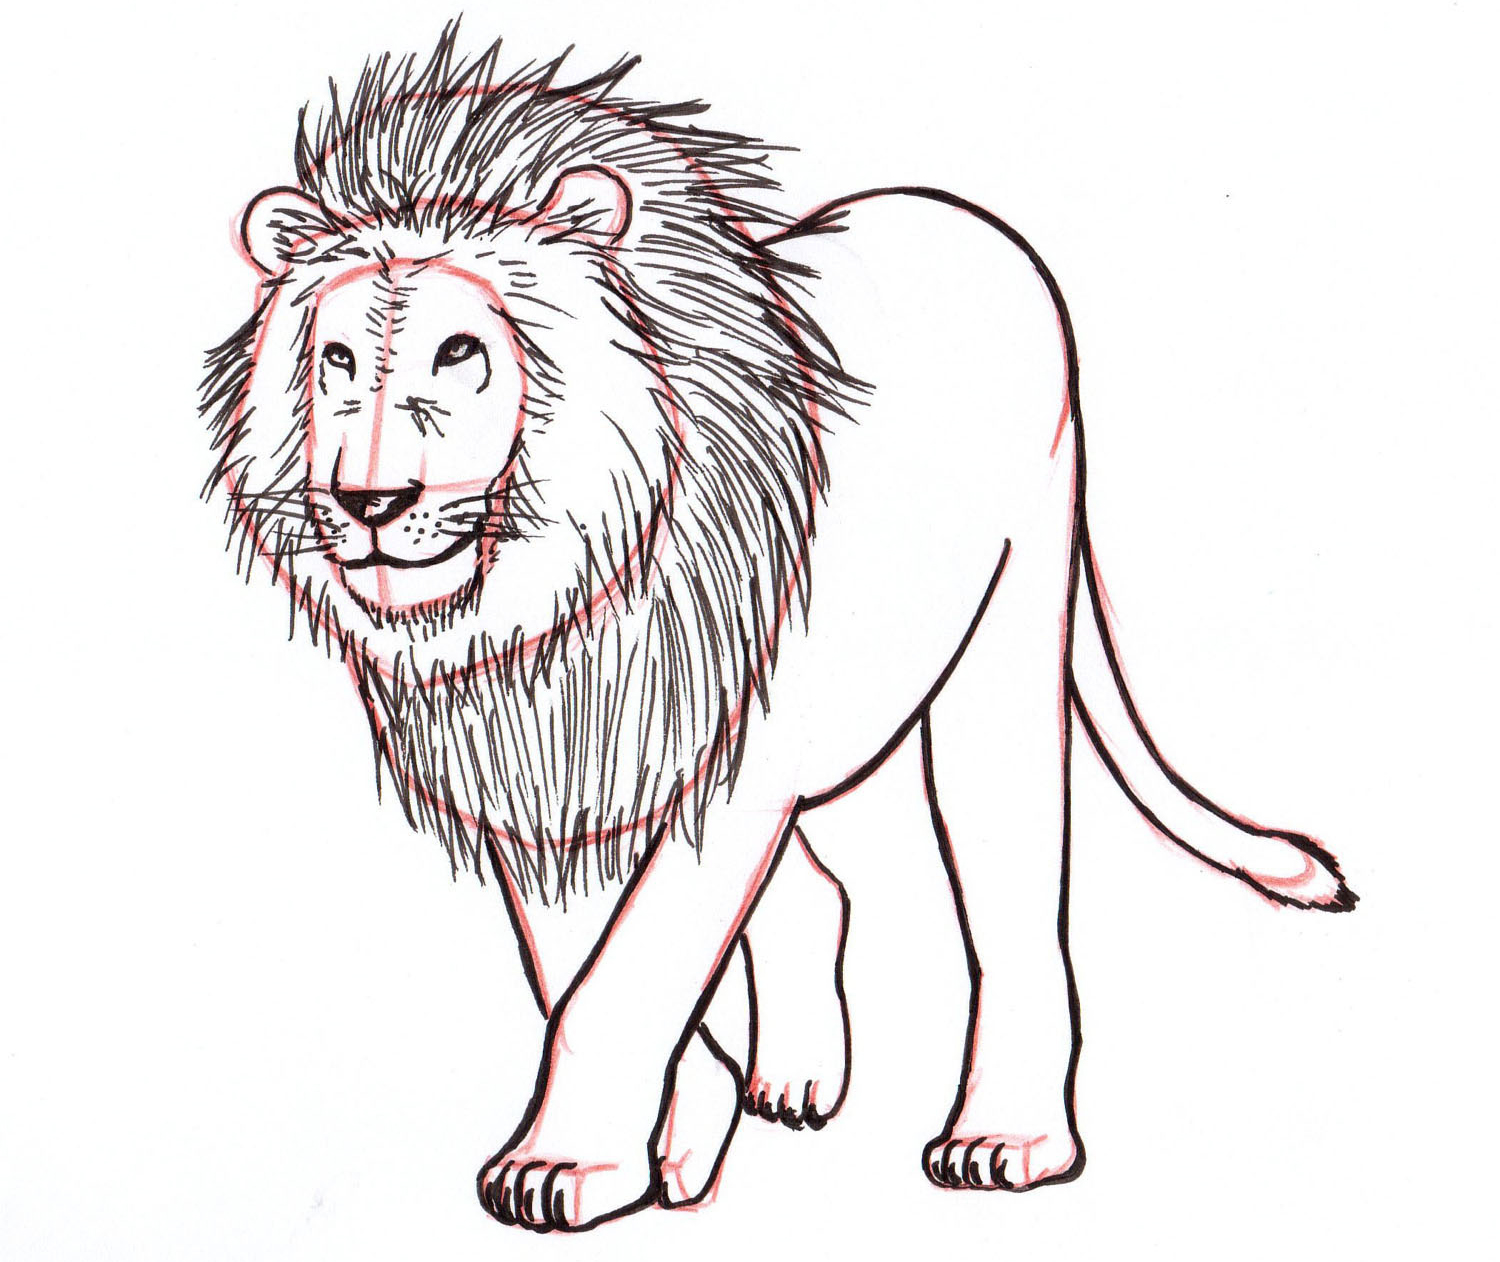 How To Draw A Lion Step By Step Liron Yanconsky